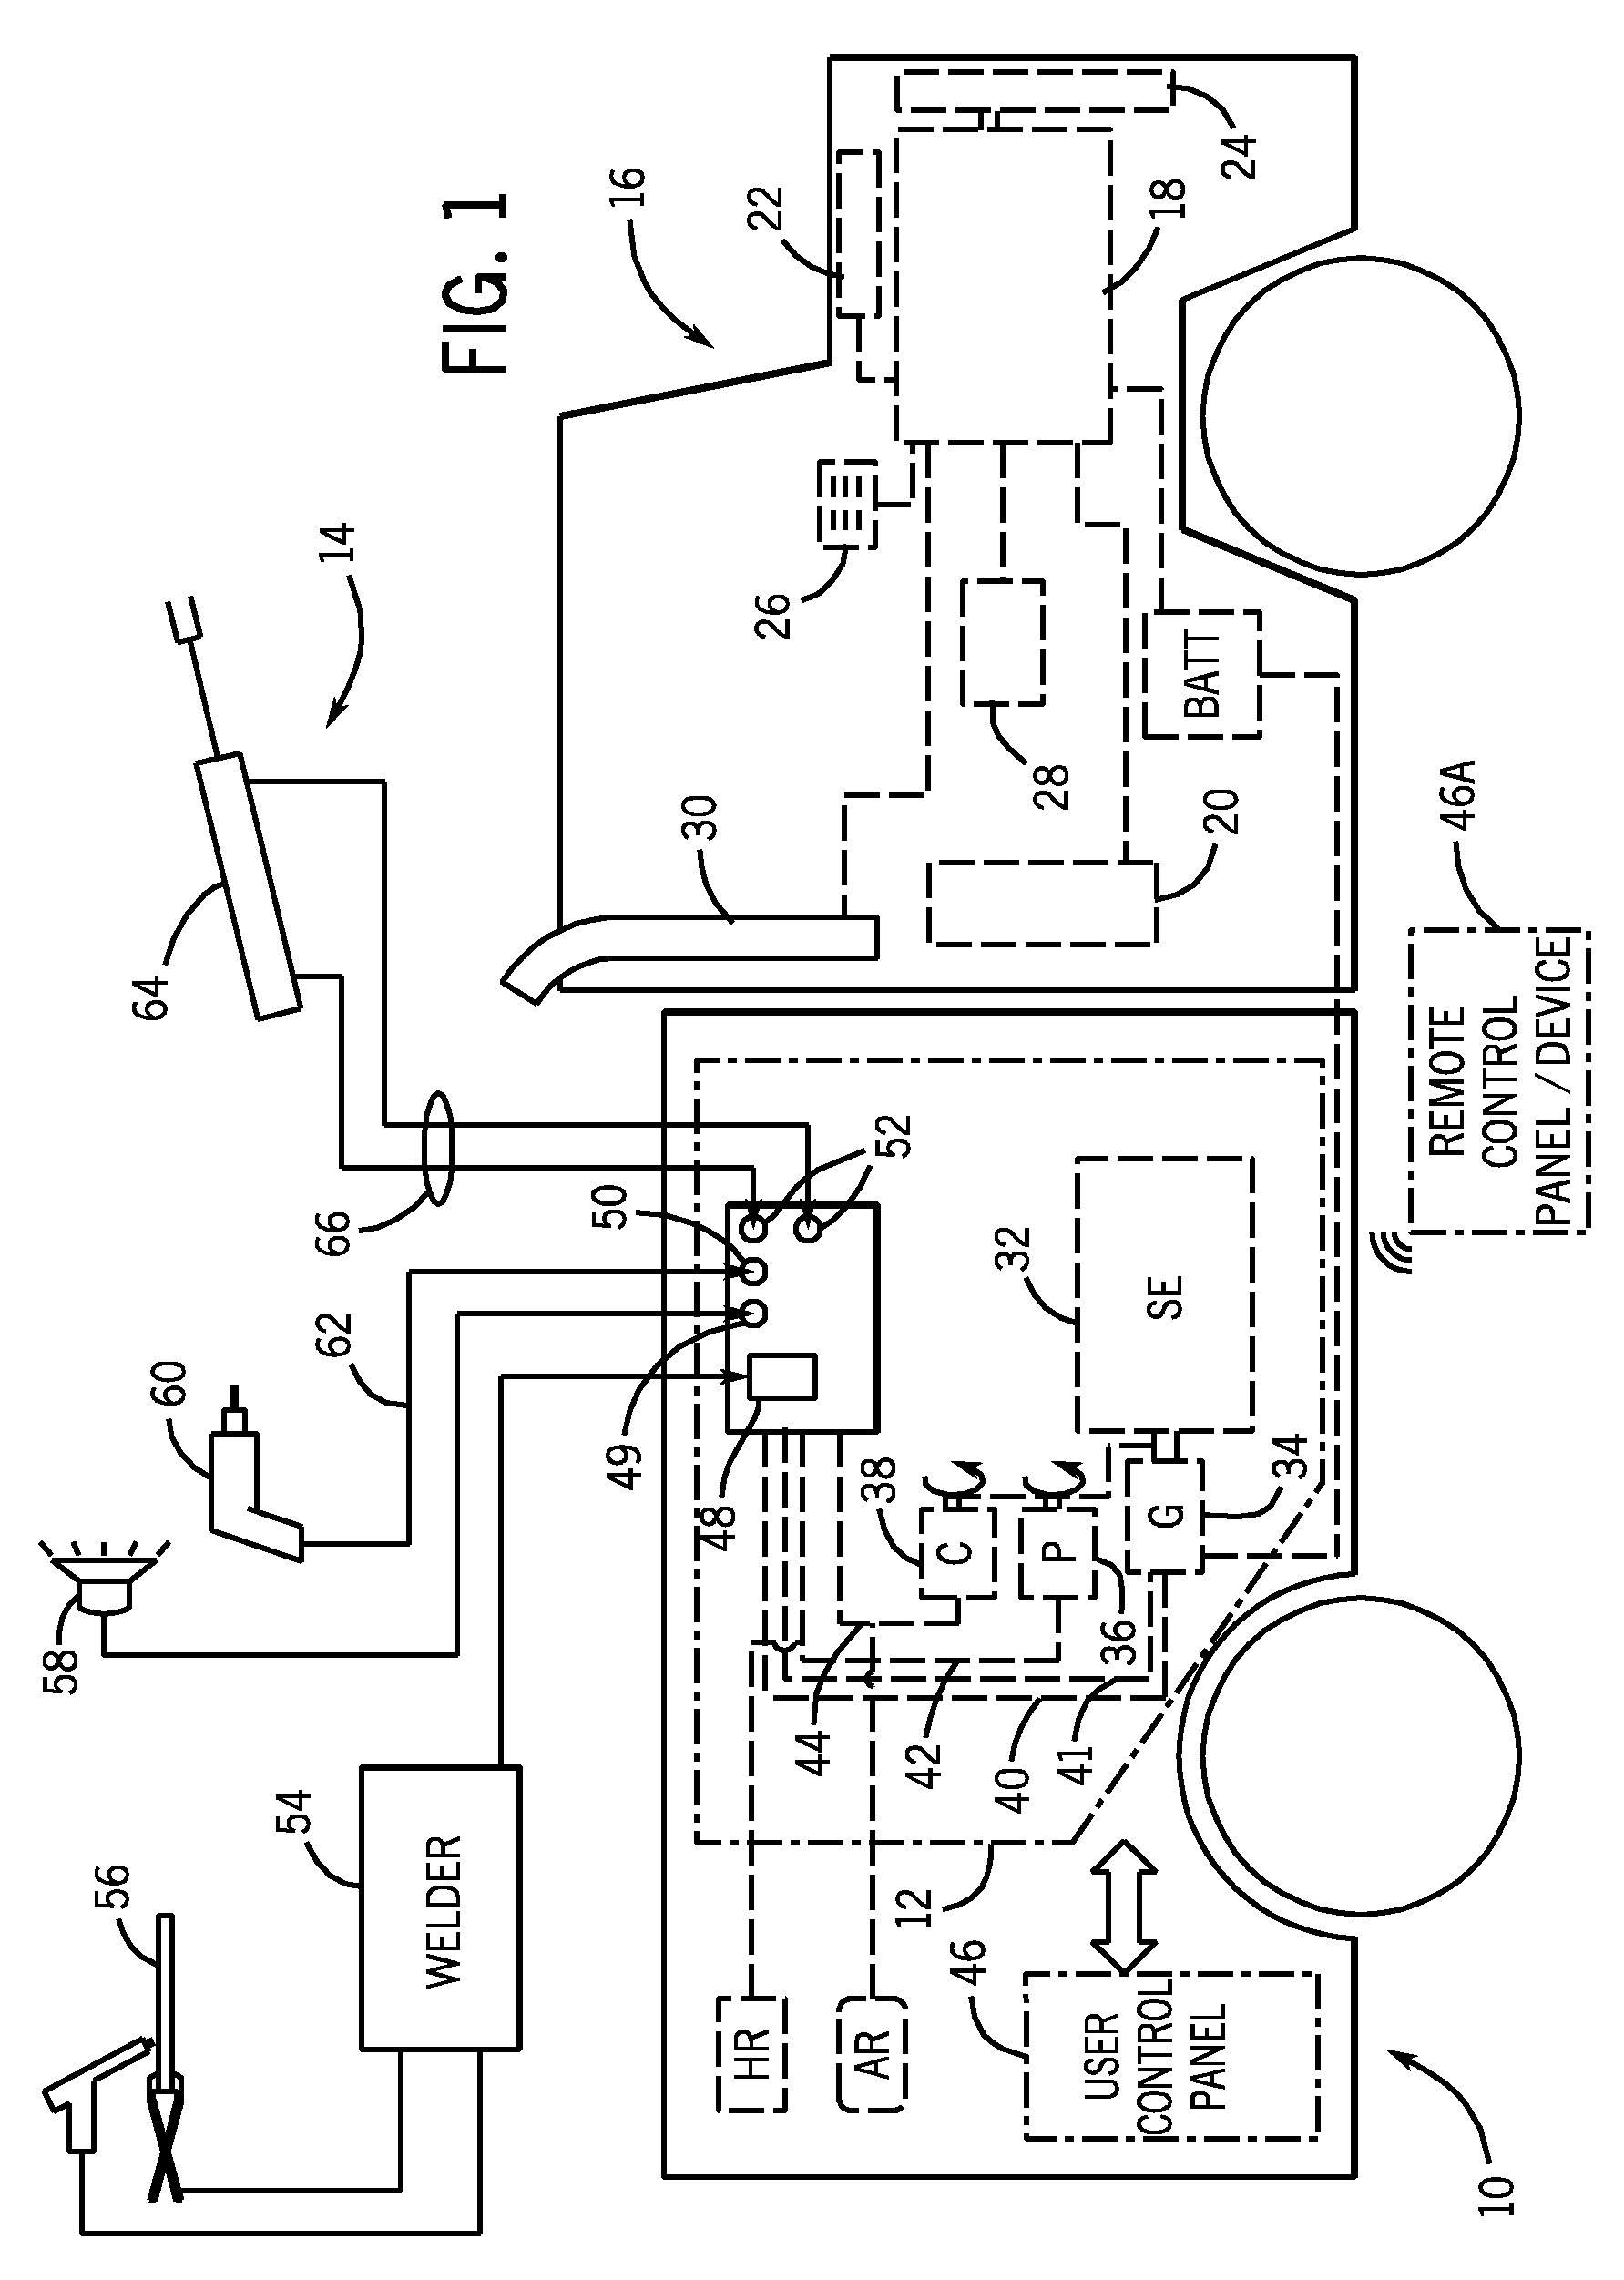 Wiring Manual 12v Wiring Diagram For Hydraulic Motor